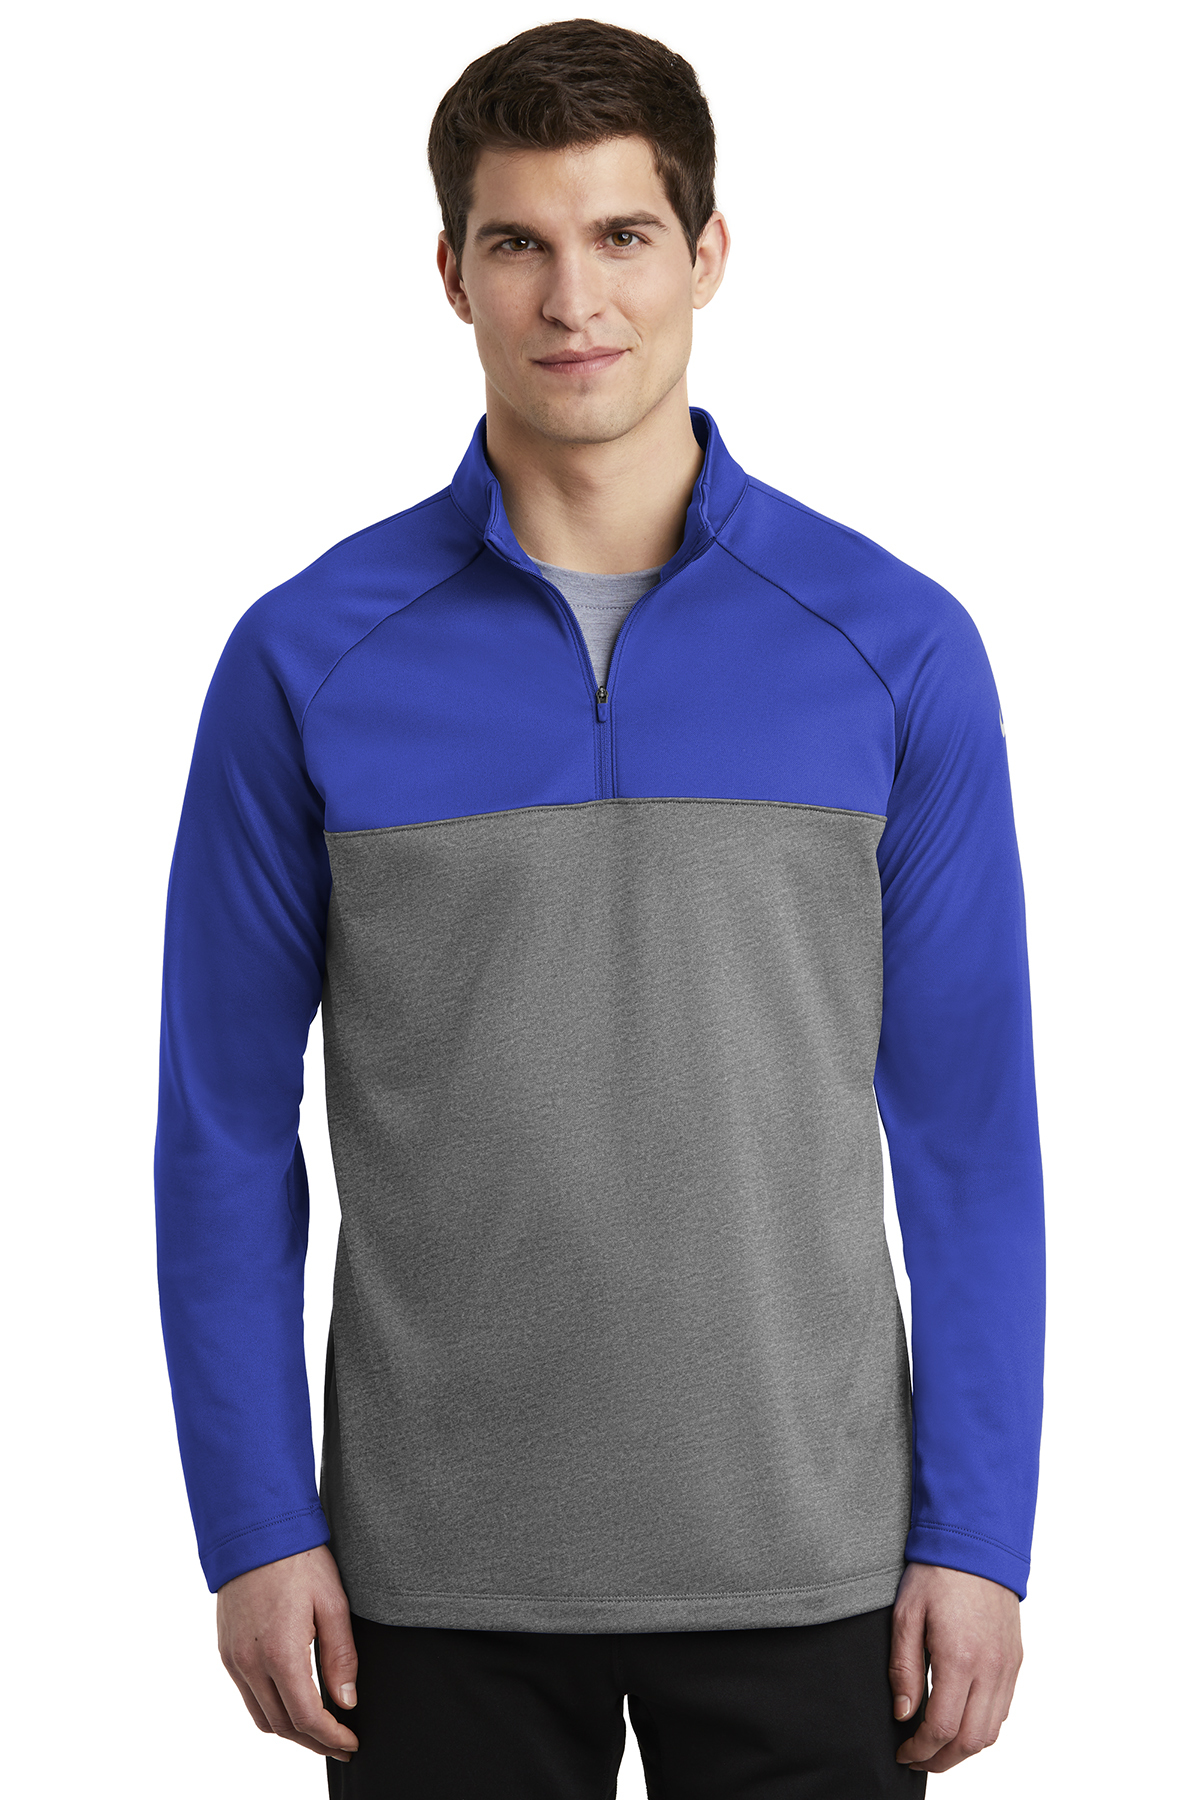 ff709909 ... click to view Game Royal/ Dark Grey Heather click to view Gym Blue/ ...